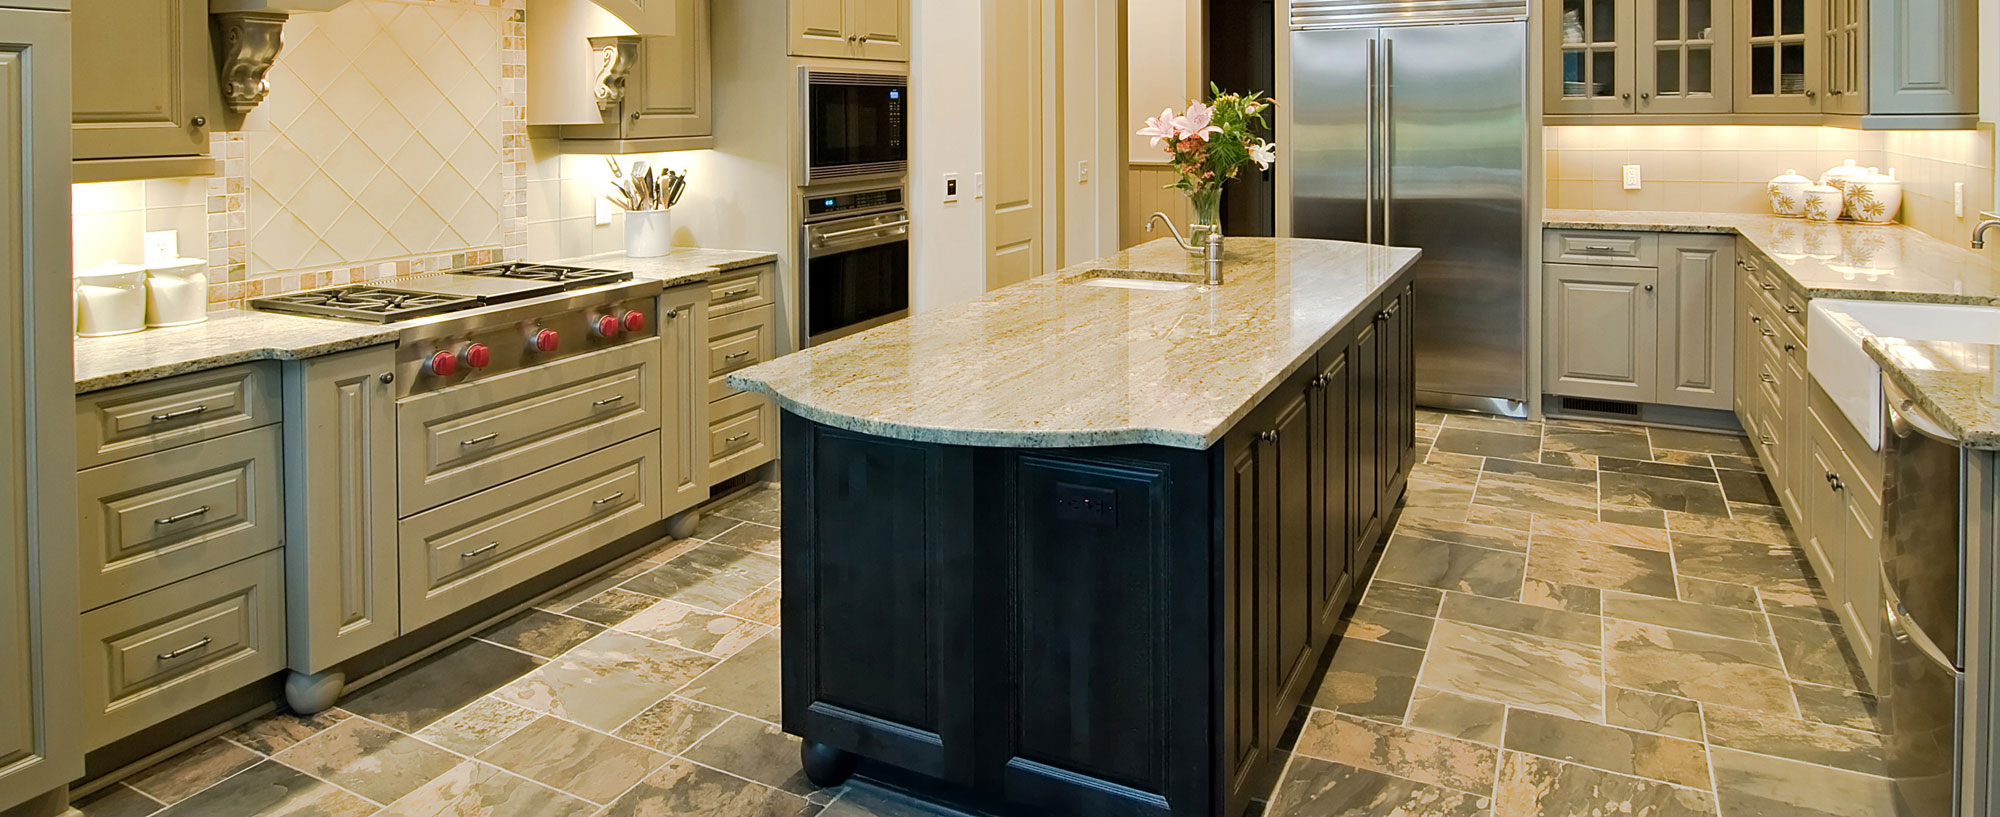 Kitchen remodeling los angeles my space remodeling for Remodeling your kitchen